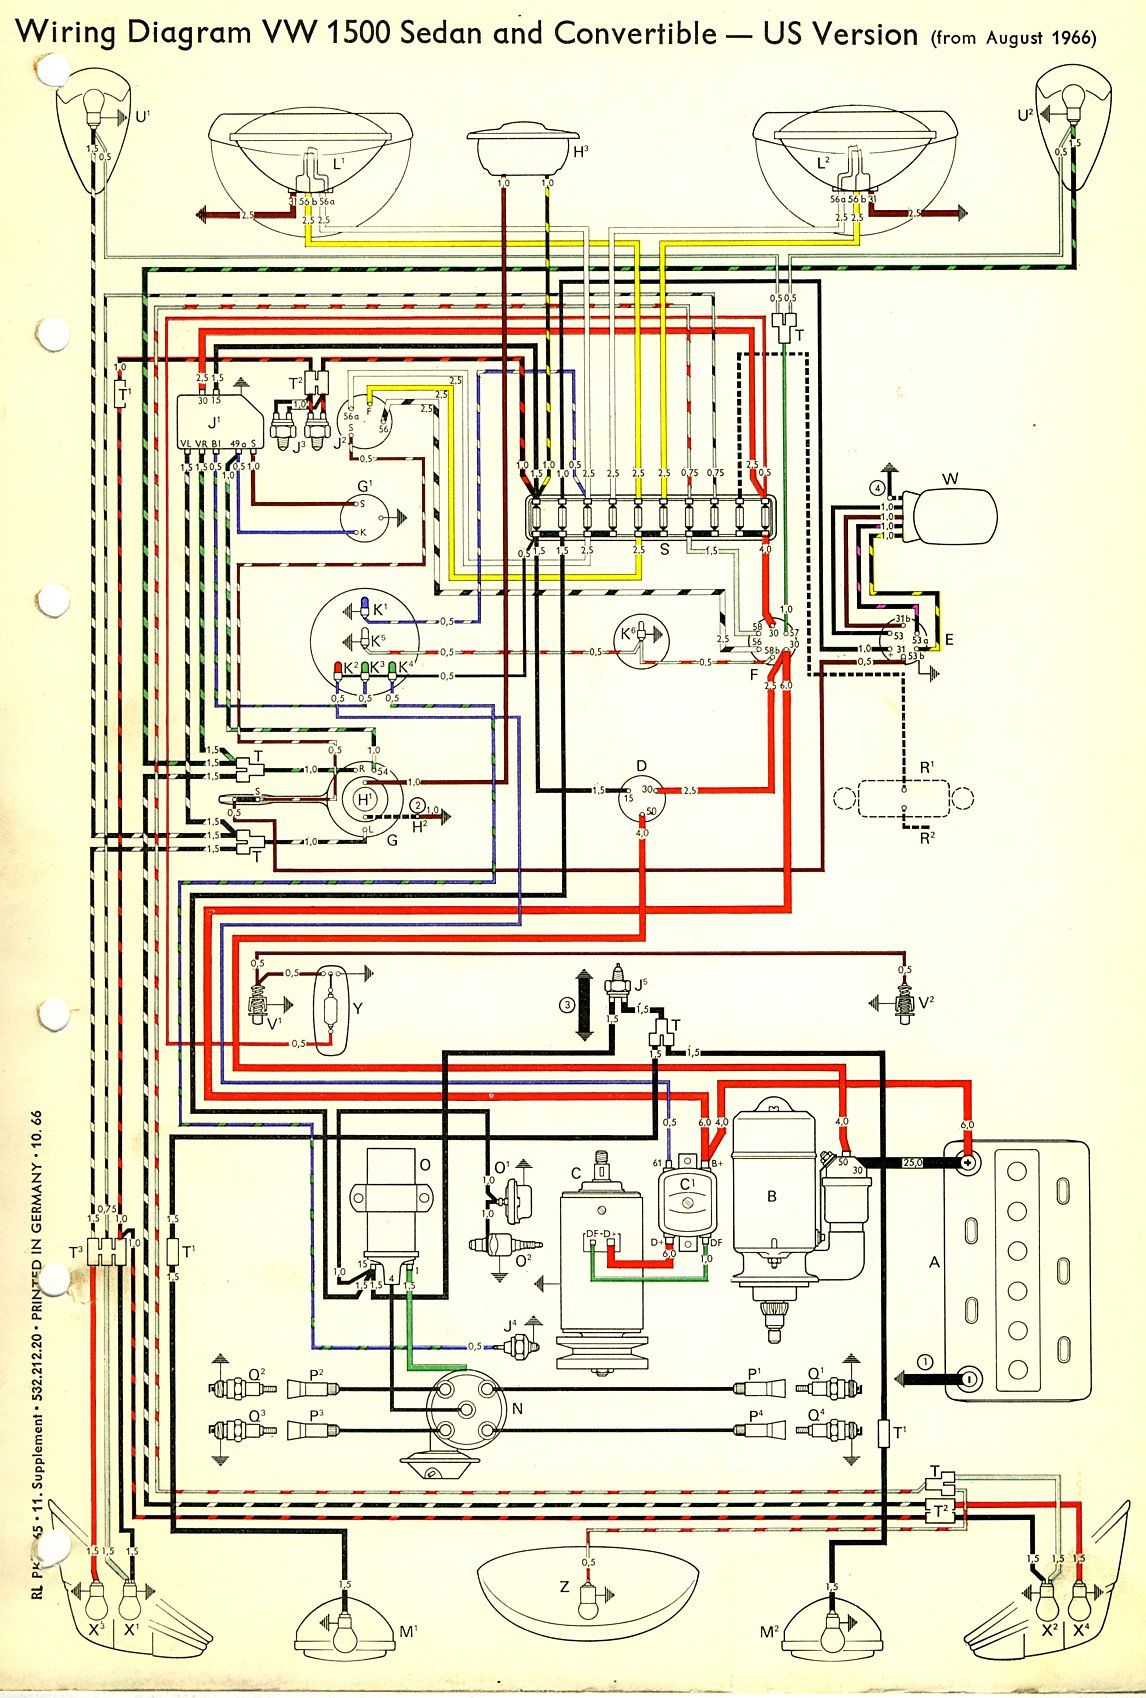 1adf990c0efb617c789fdd21338448b0 1967 beetle wiring diagram (usa) thegoldenbug com best 1967 vw vw wiring diagrams at readyjetset.co